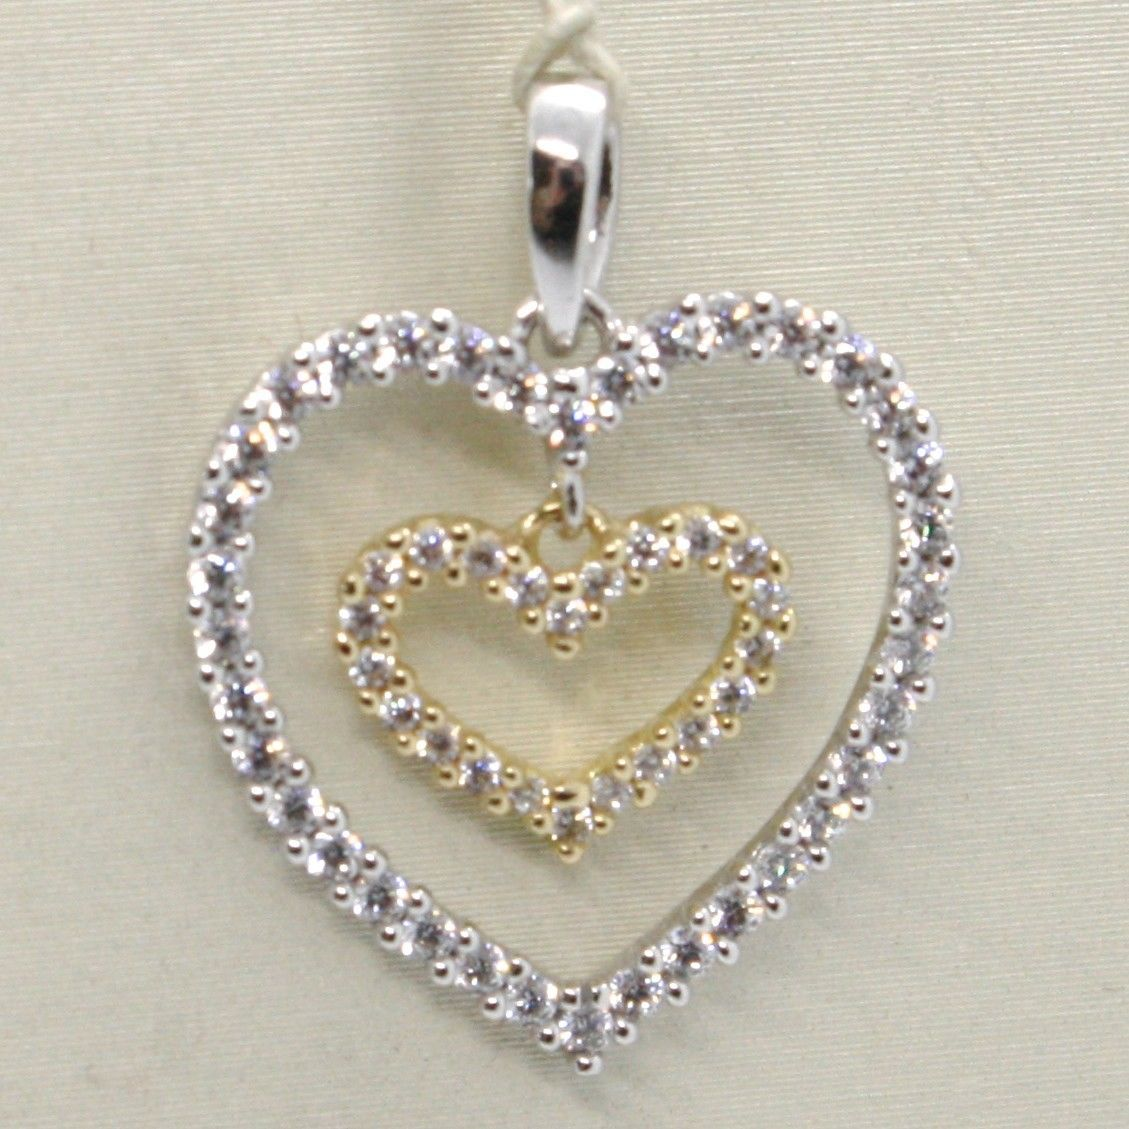 18K YELLOW AND WHITE GOLD HEART DOUBLE PENDANT CHARM WITH CUBIC ZIRCONIA